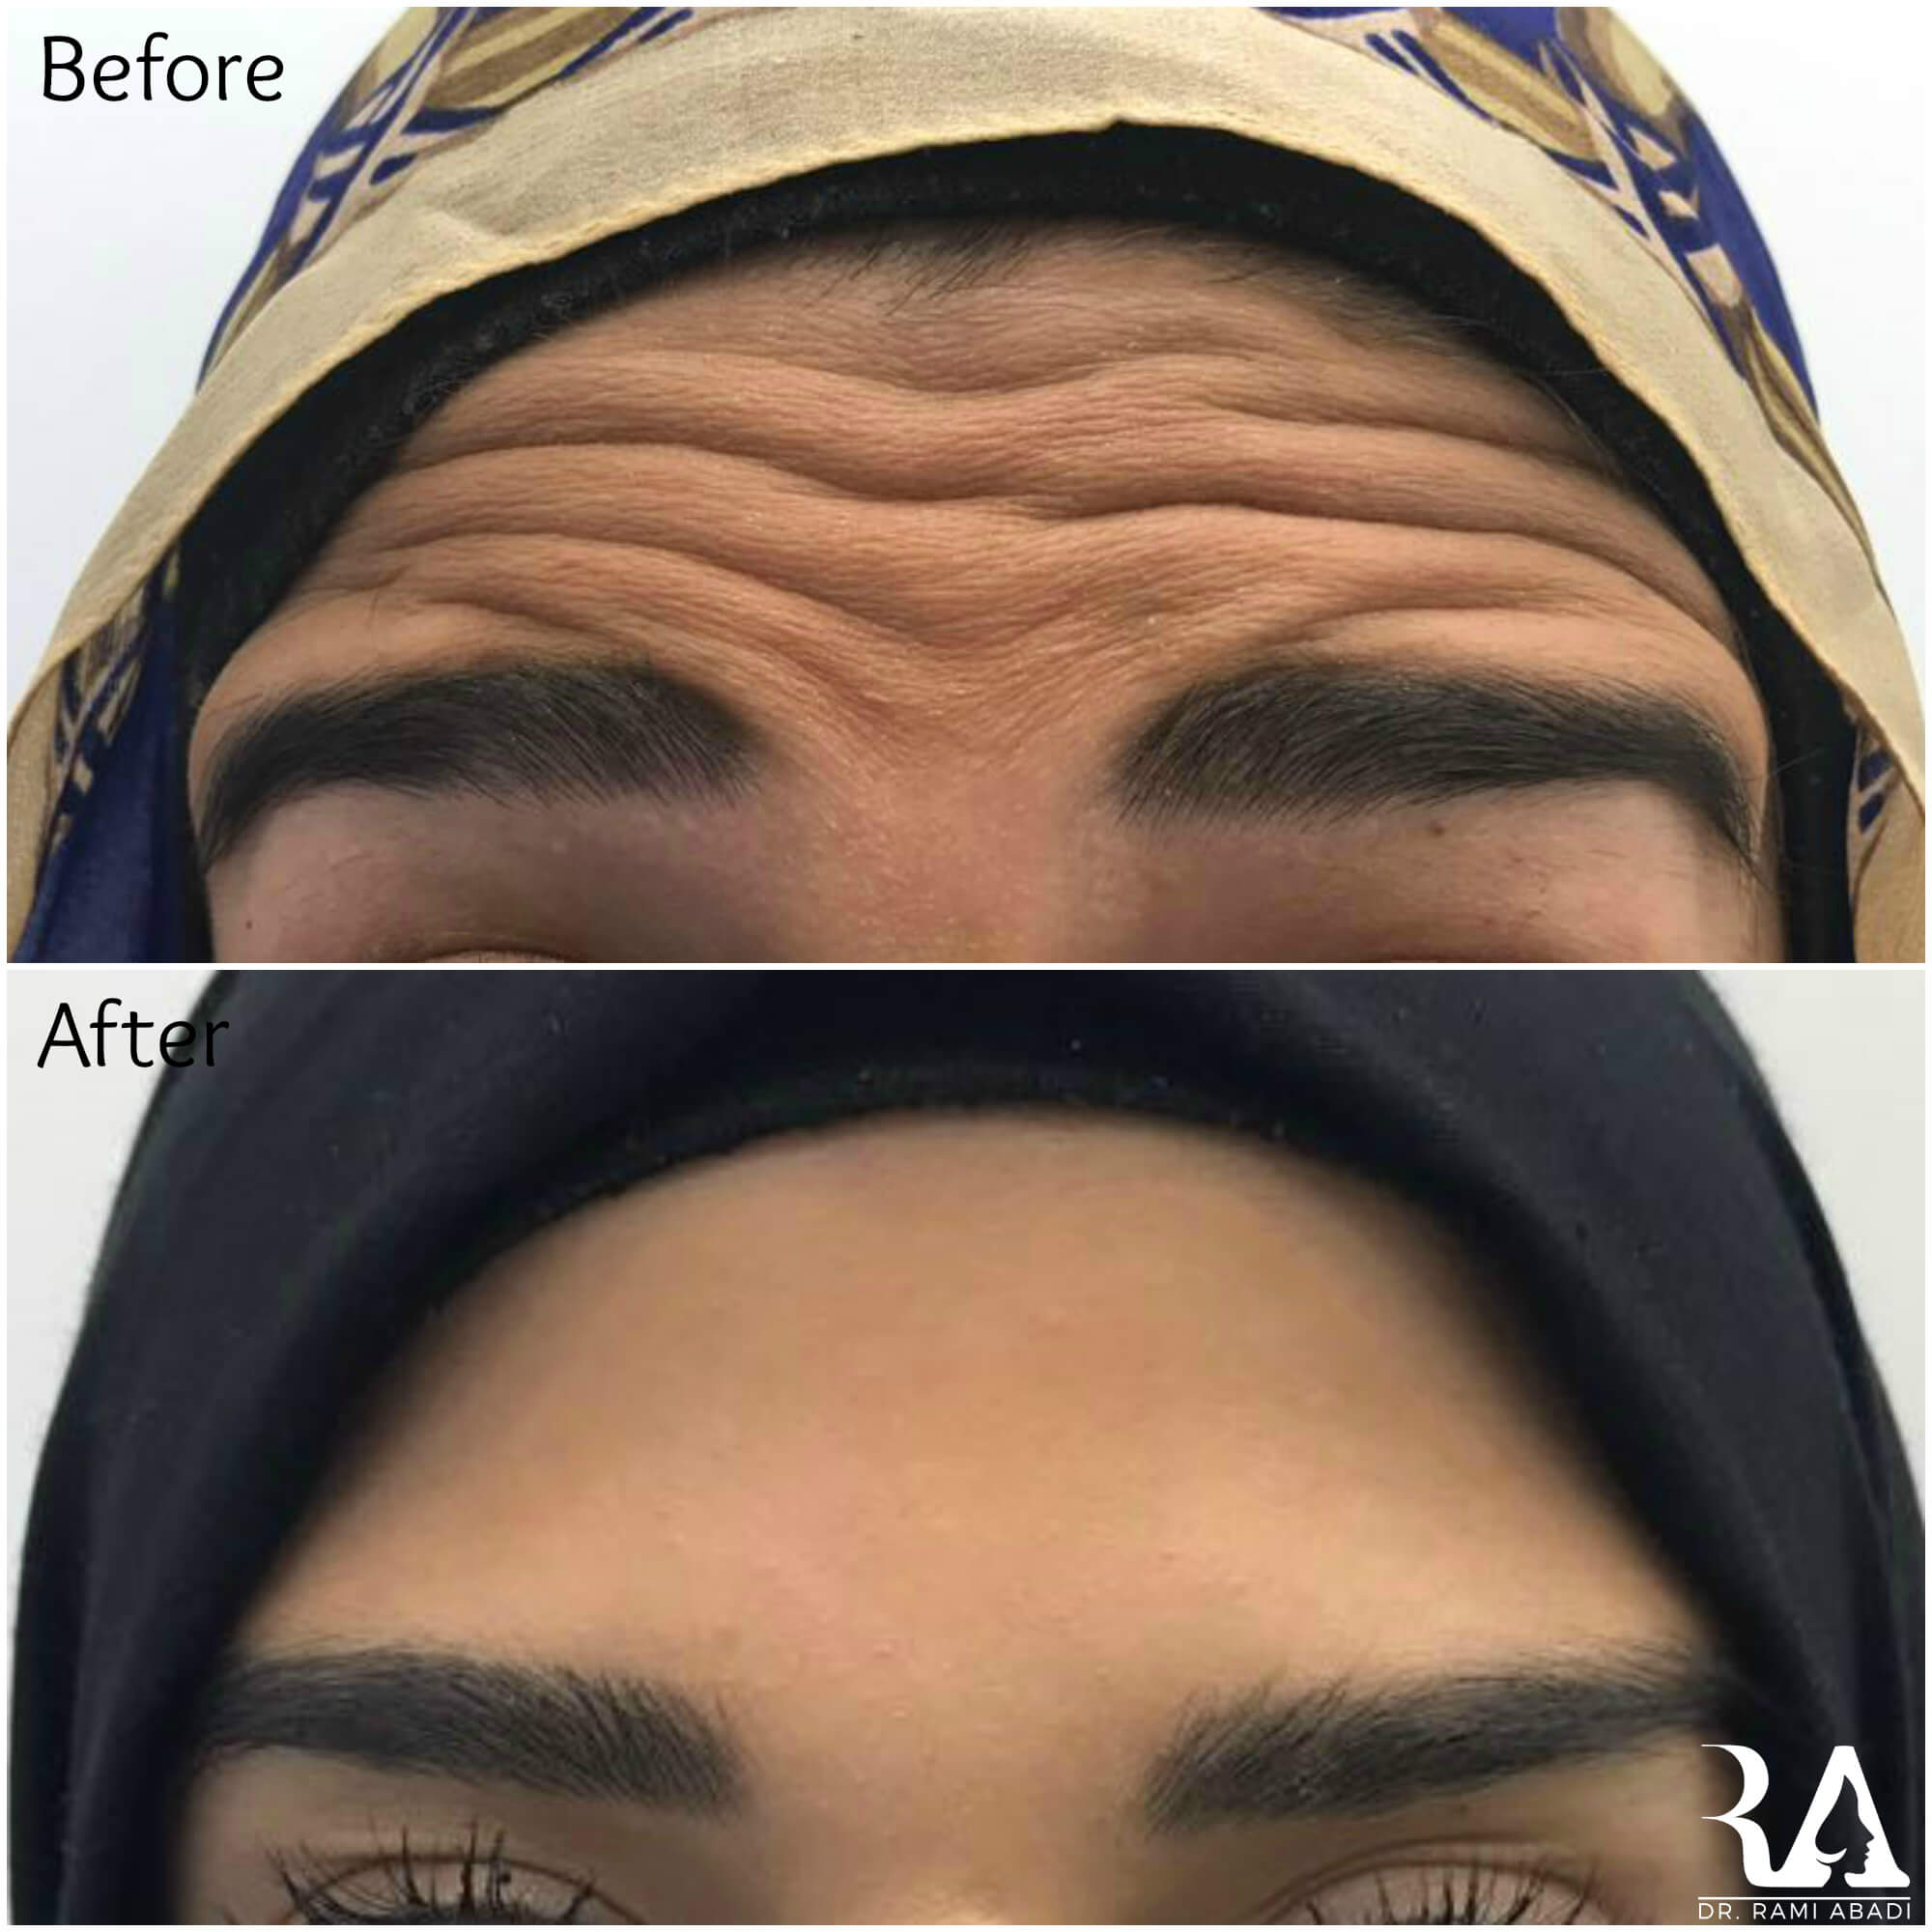 Botox for forehead lines and wrinkles